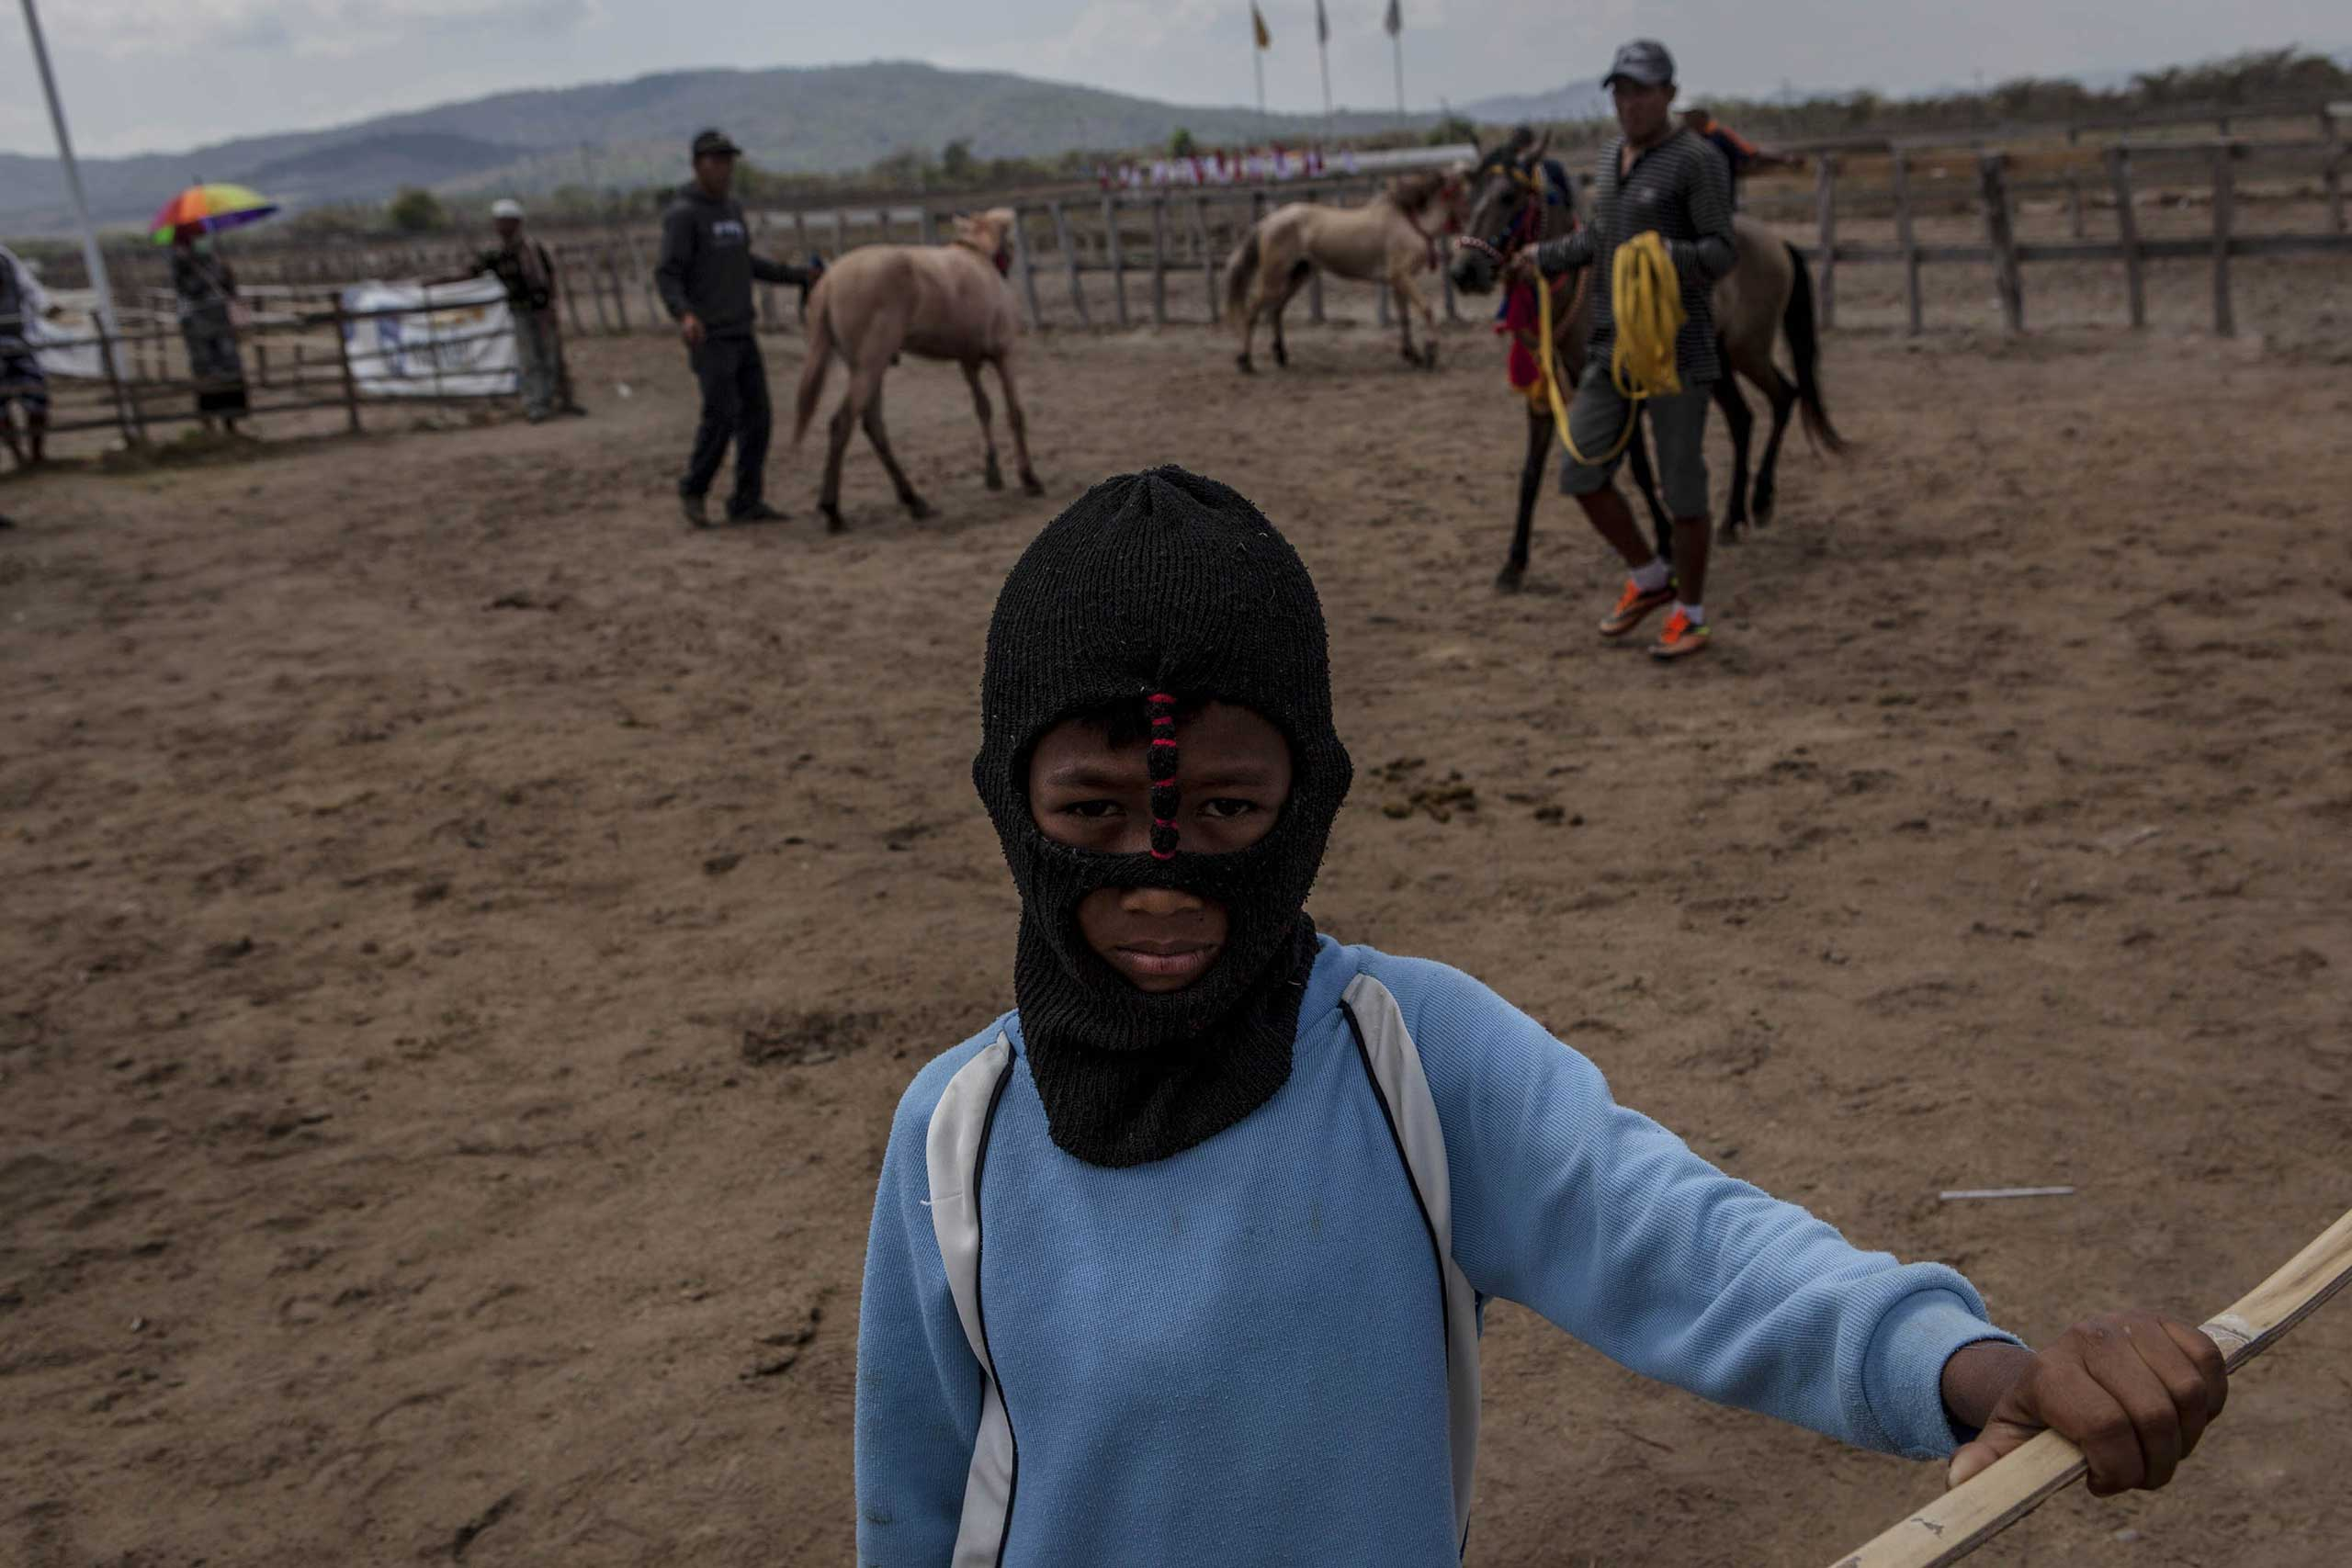 Sept. 27, 2014. A child jockey prepares for the race during the traditional horse races as part of Moyo festival in Sumbawa Island, West Nusa Tenggara, Indonesia.